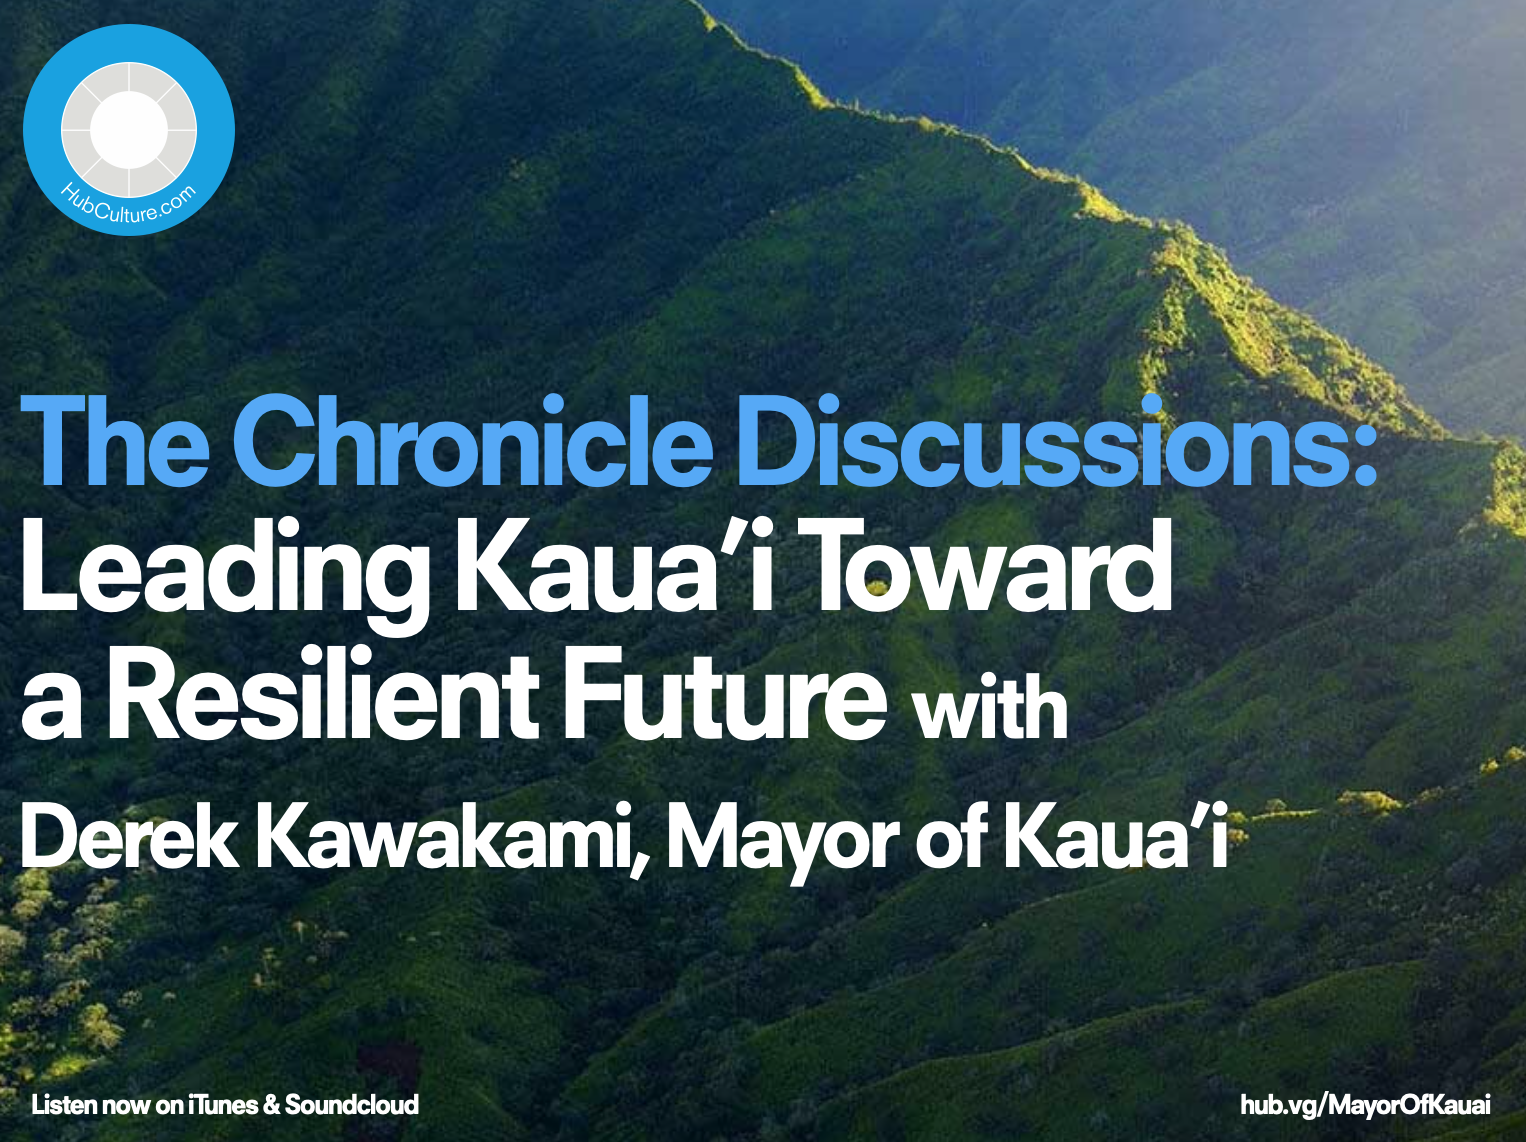 New Episode of The Chronicle Discussions: Leading Kaua'i Toward a Resilient Future with Derek Kawakami, Mayor of Kaua'i